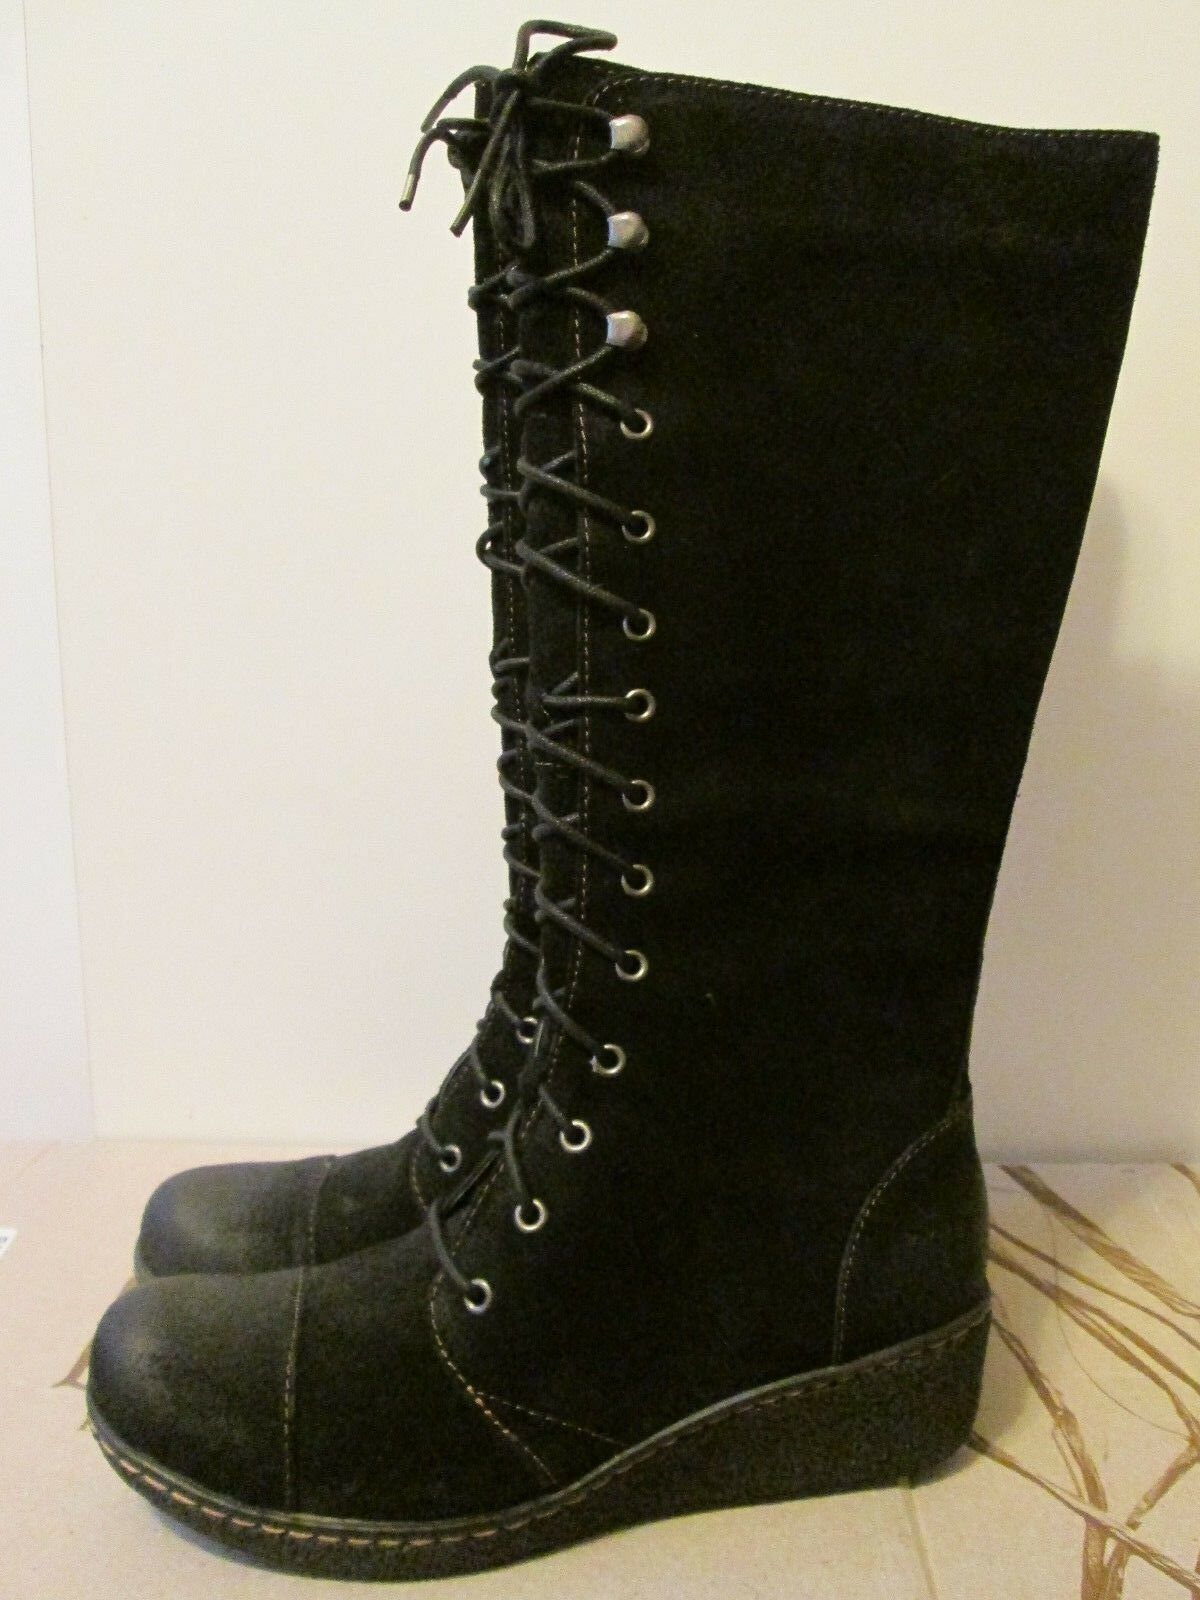 150 Born Sheree Black 100% Leather Knee High Lace Up Military Style Boots 8 NEW